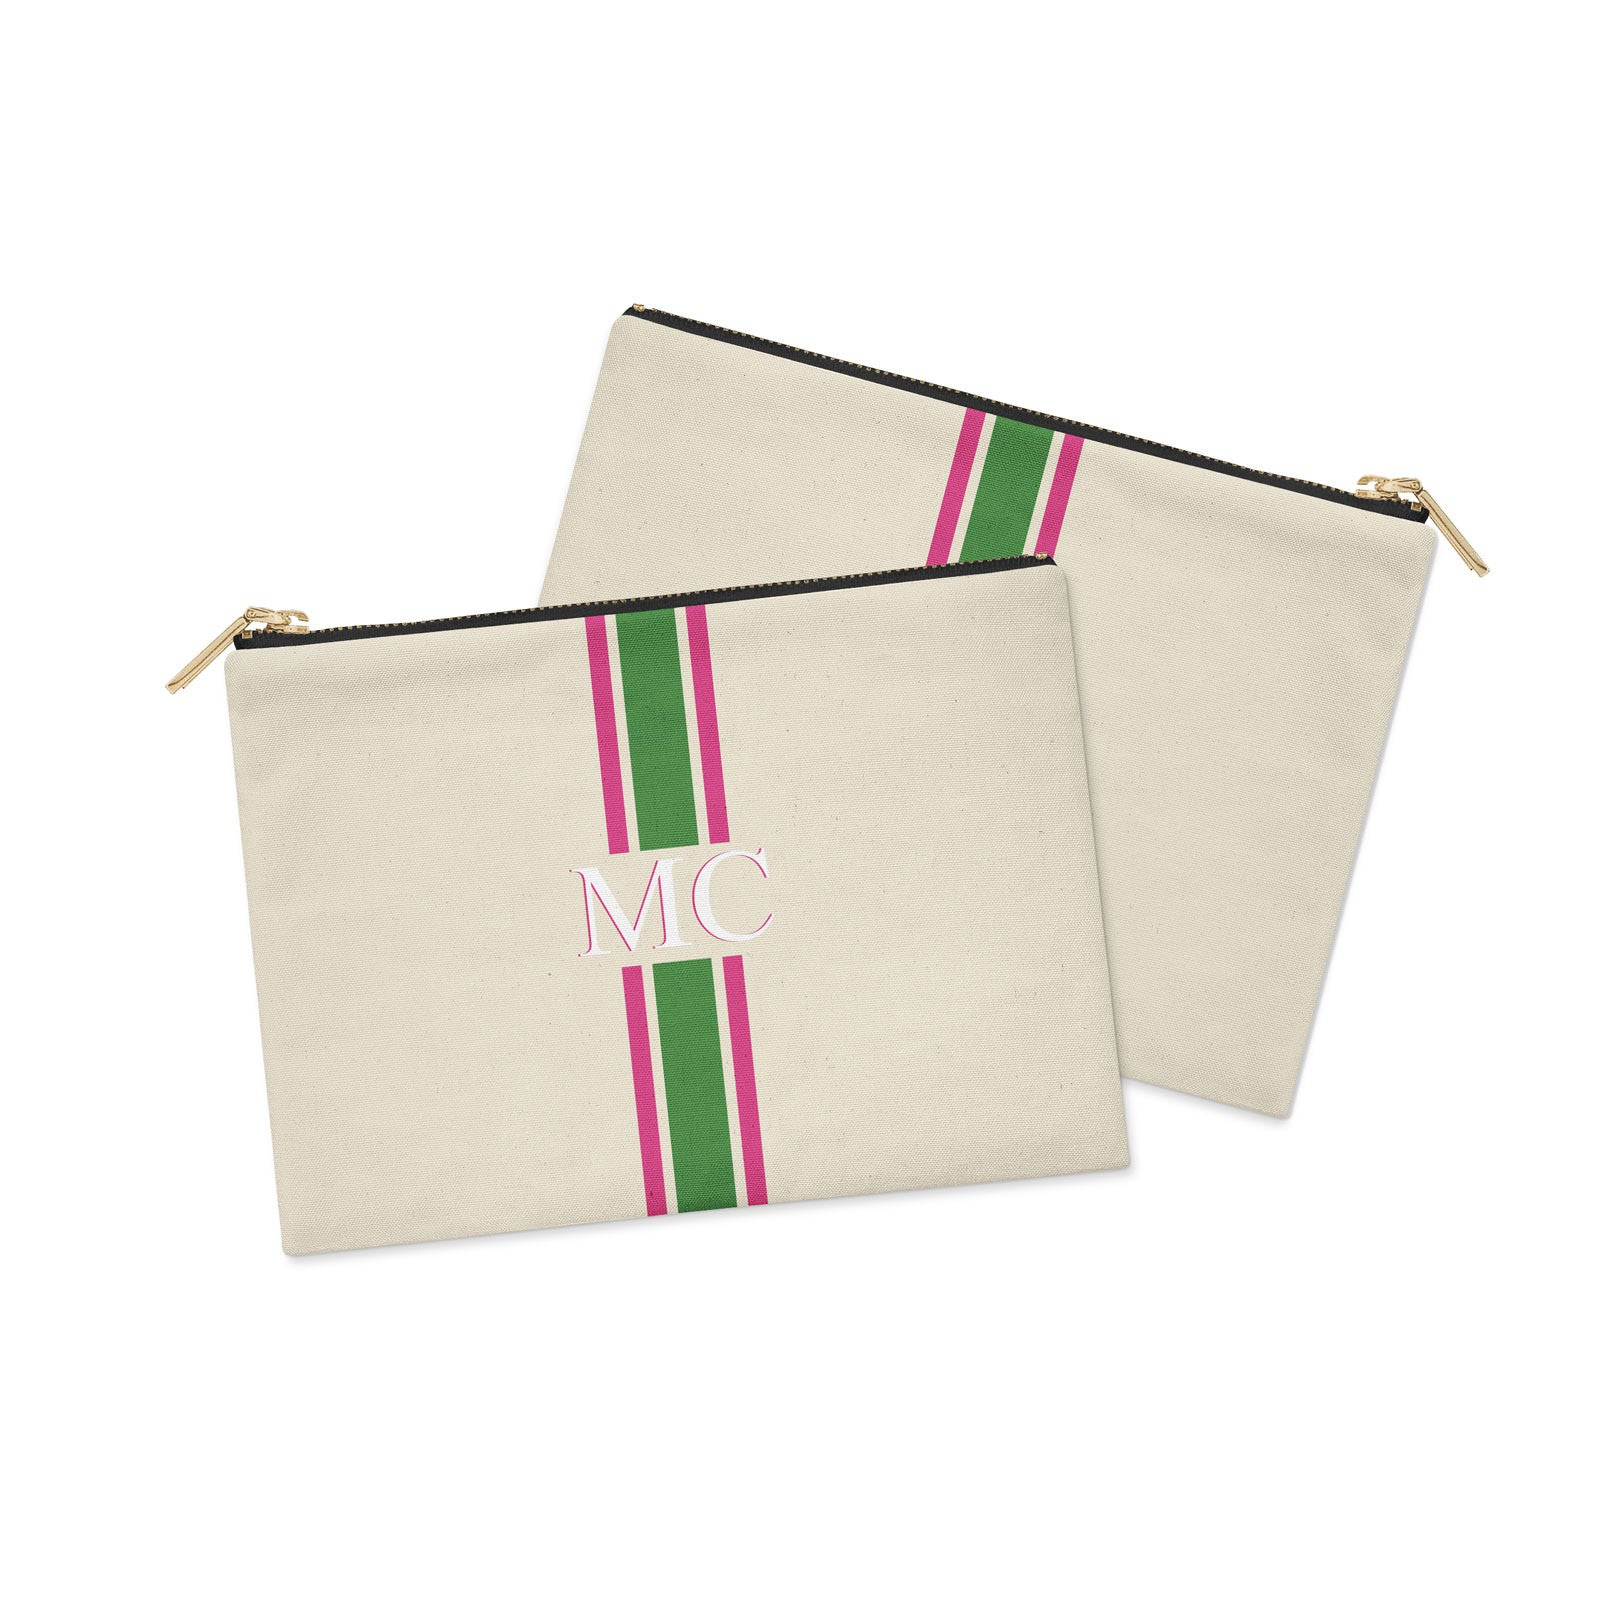 Monogram Striped Green and Pink Canvas Clutch